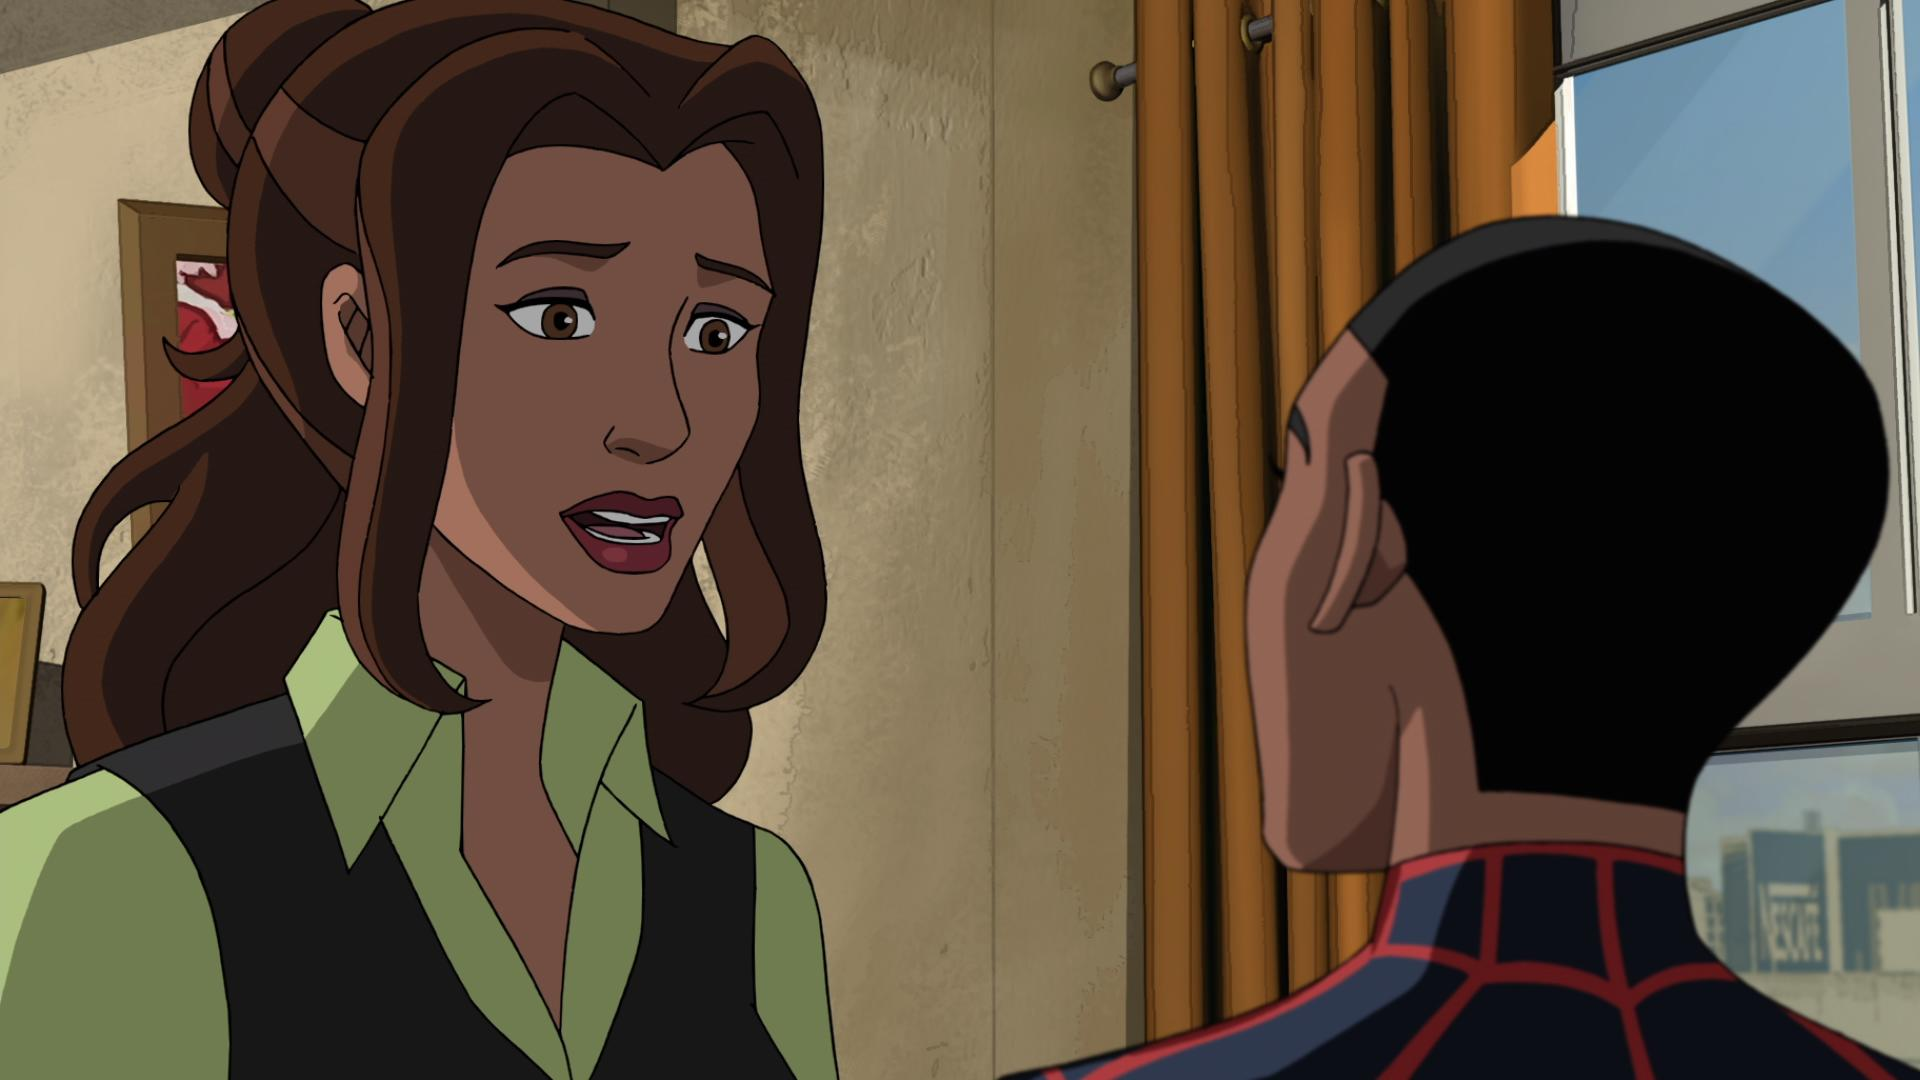 Ultimate Spiderman | S04 | 1080p | Lat-Eng | Multi-Sub | 26/26 | x264 0949a416b5a26ae57d3dfbc0f876a9d63a5a1615